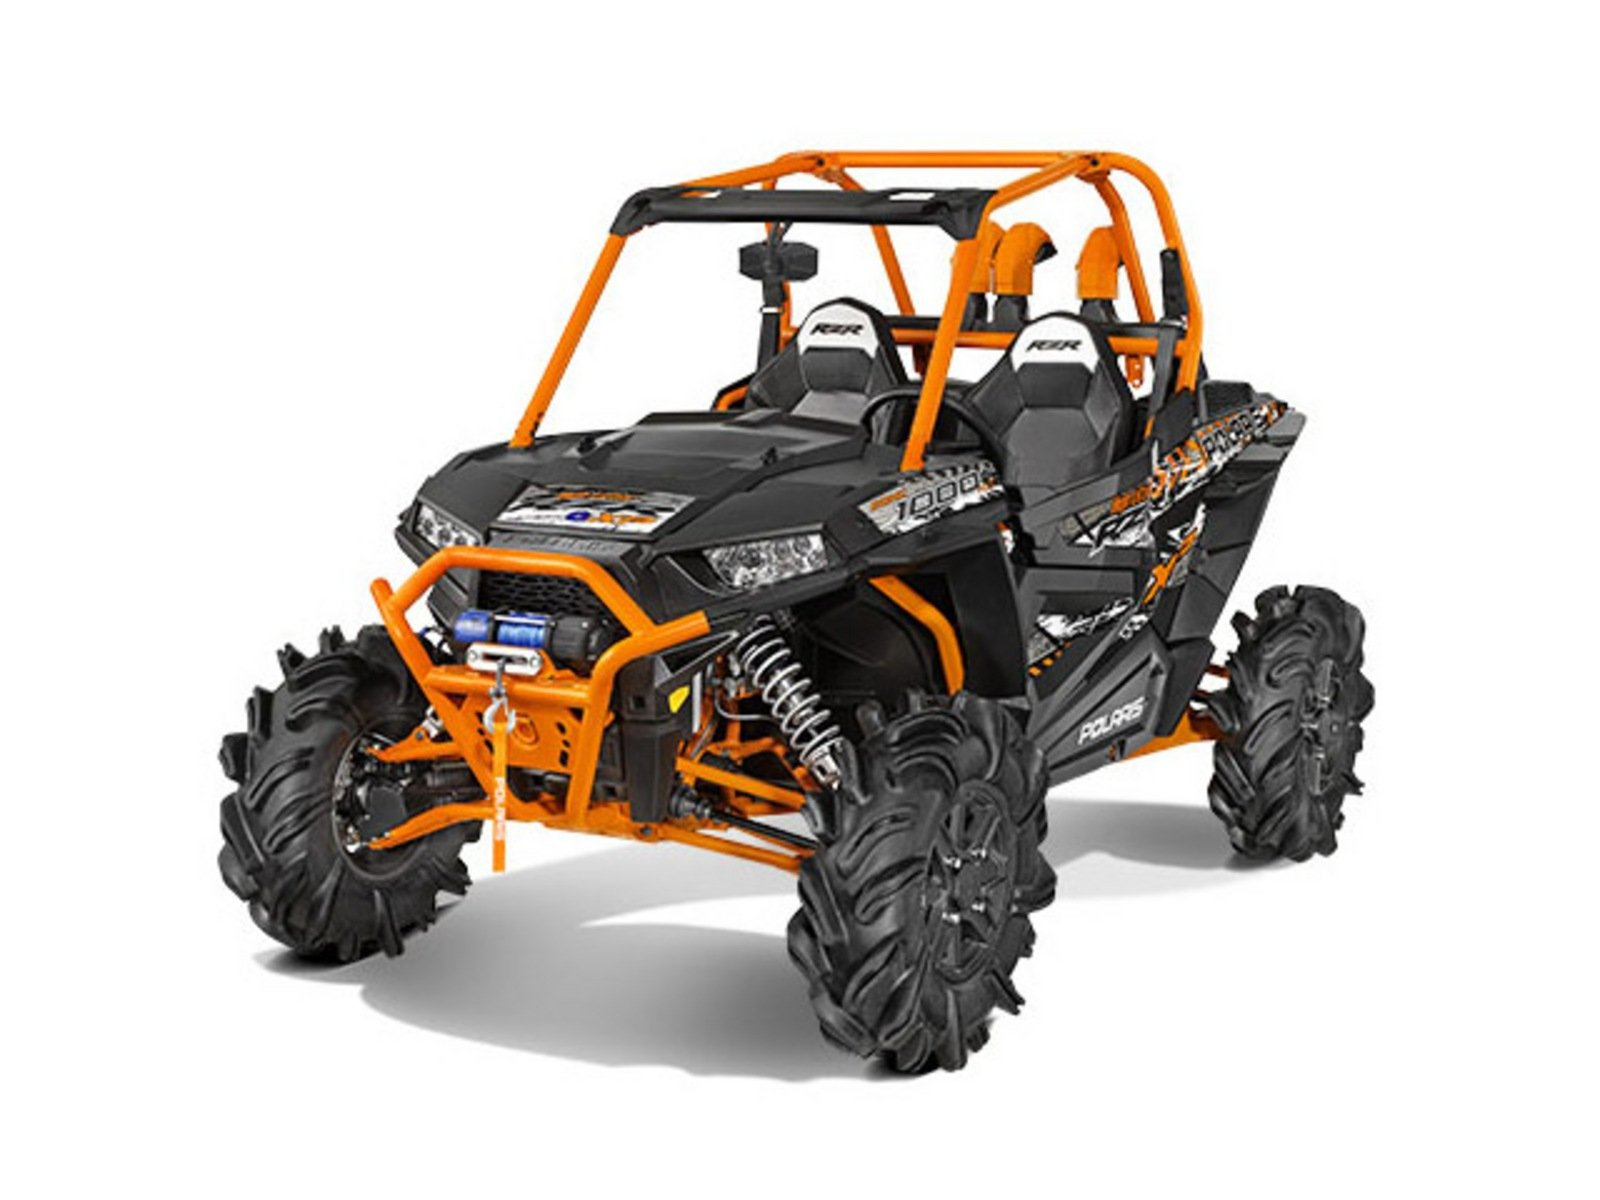 2015 polaris rzr xp 1000 eps high lifter edition review top speed. Black Bedroom Furniture Sets. Home Design Ideas